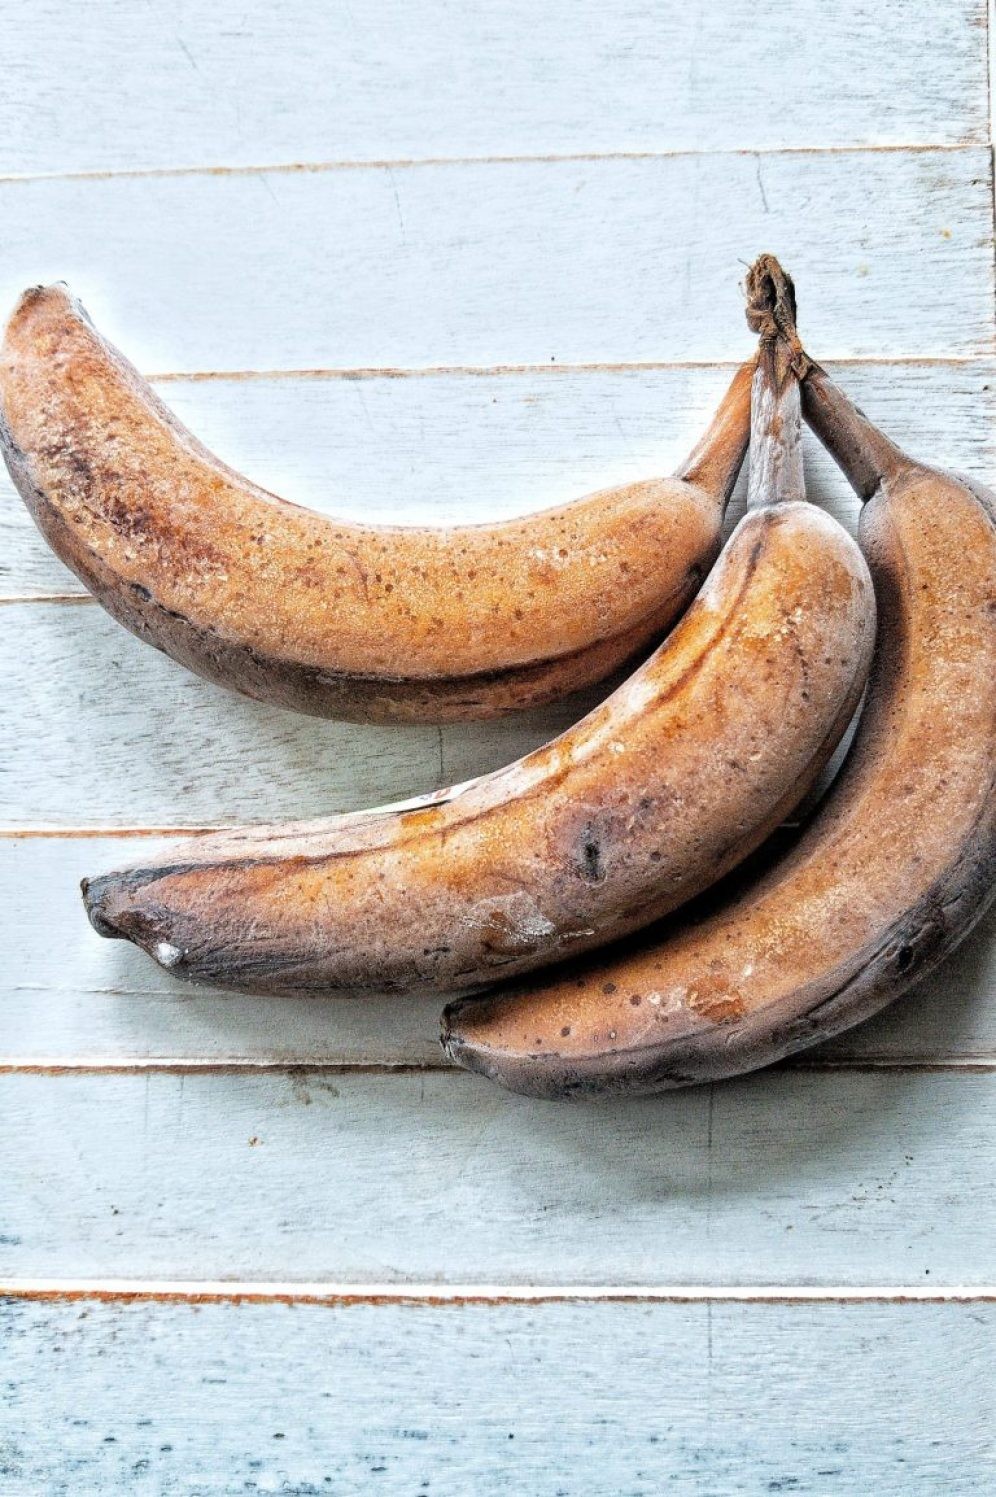 Three frozen bananas against a blue-white wooden background